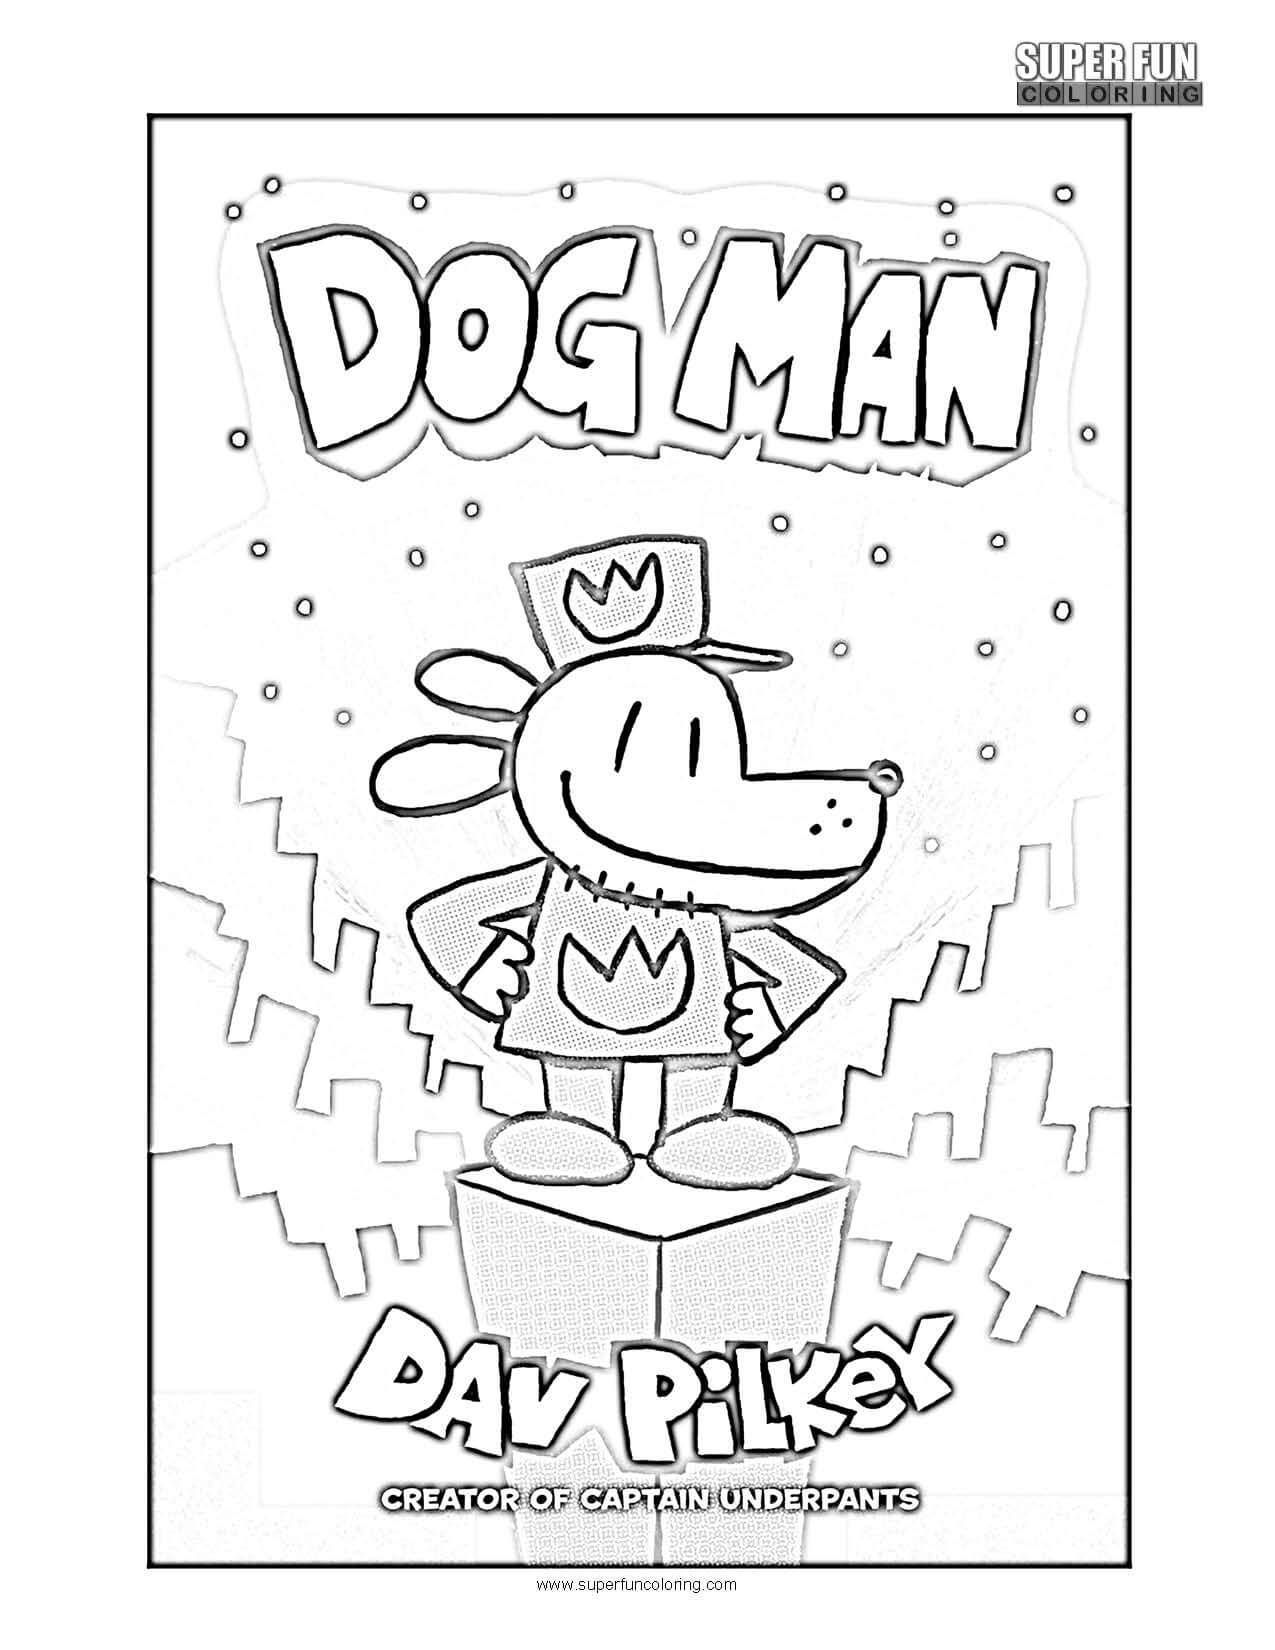 5500 Dog Man Coloring Book Hd Coloring Pages For Kids Pokemon Coloring Pages School Coloring Pages